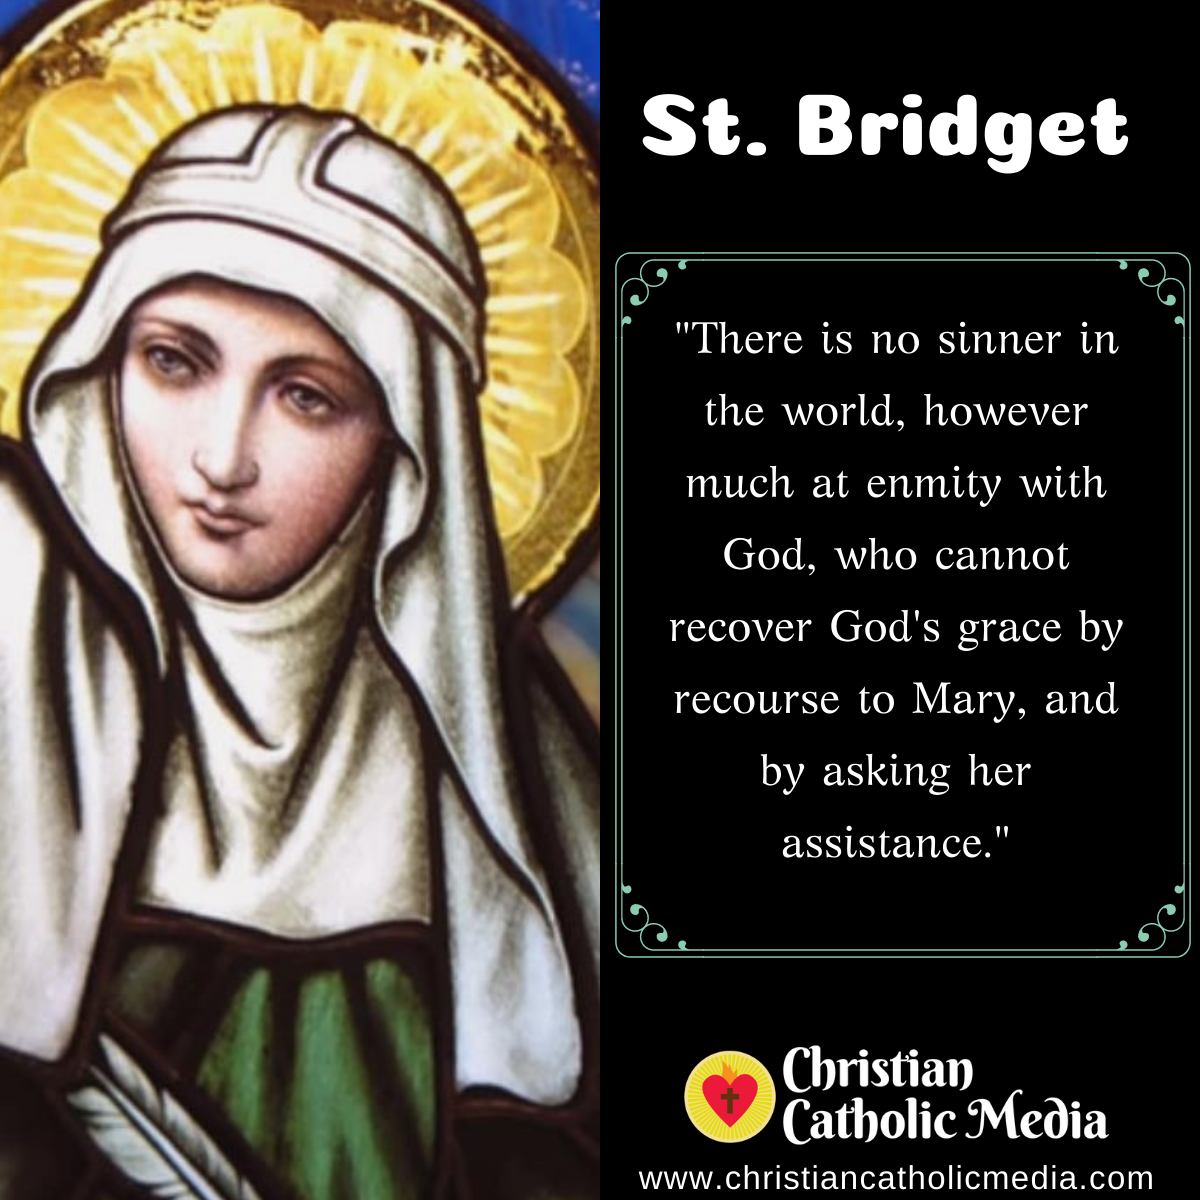 St. Bridget - Thursday July 23, 2020